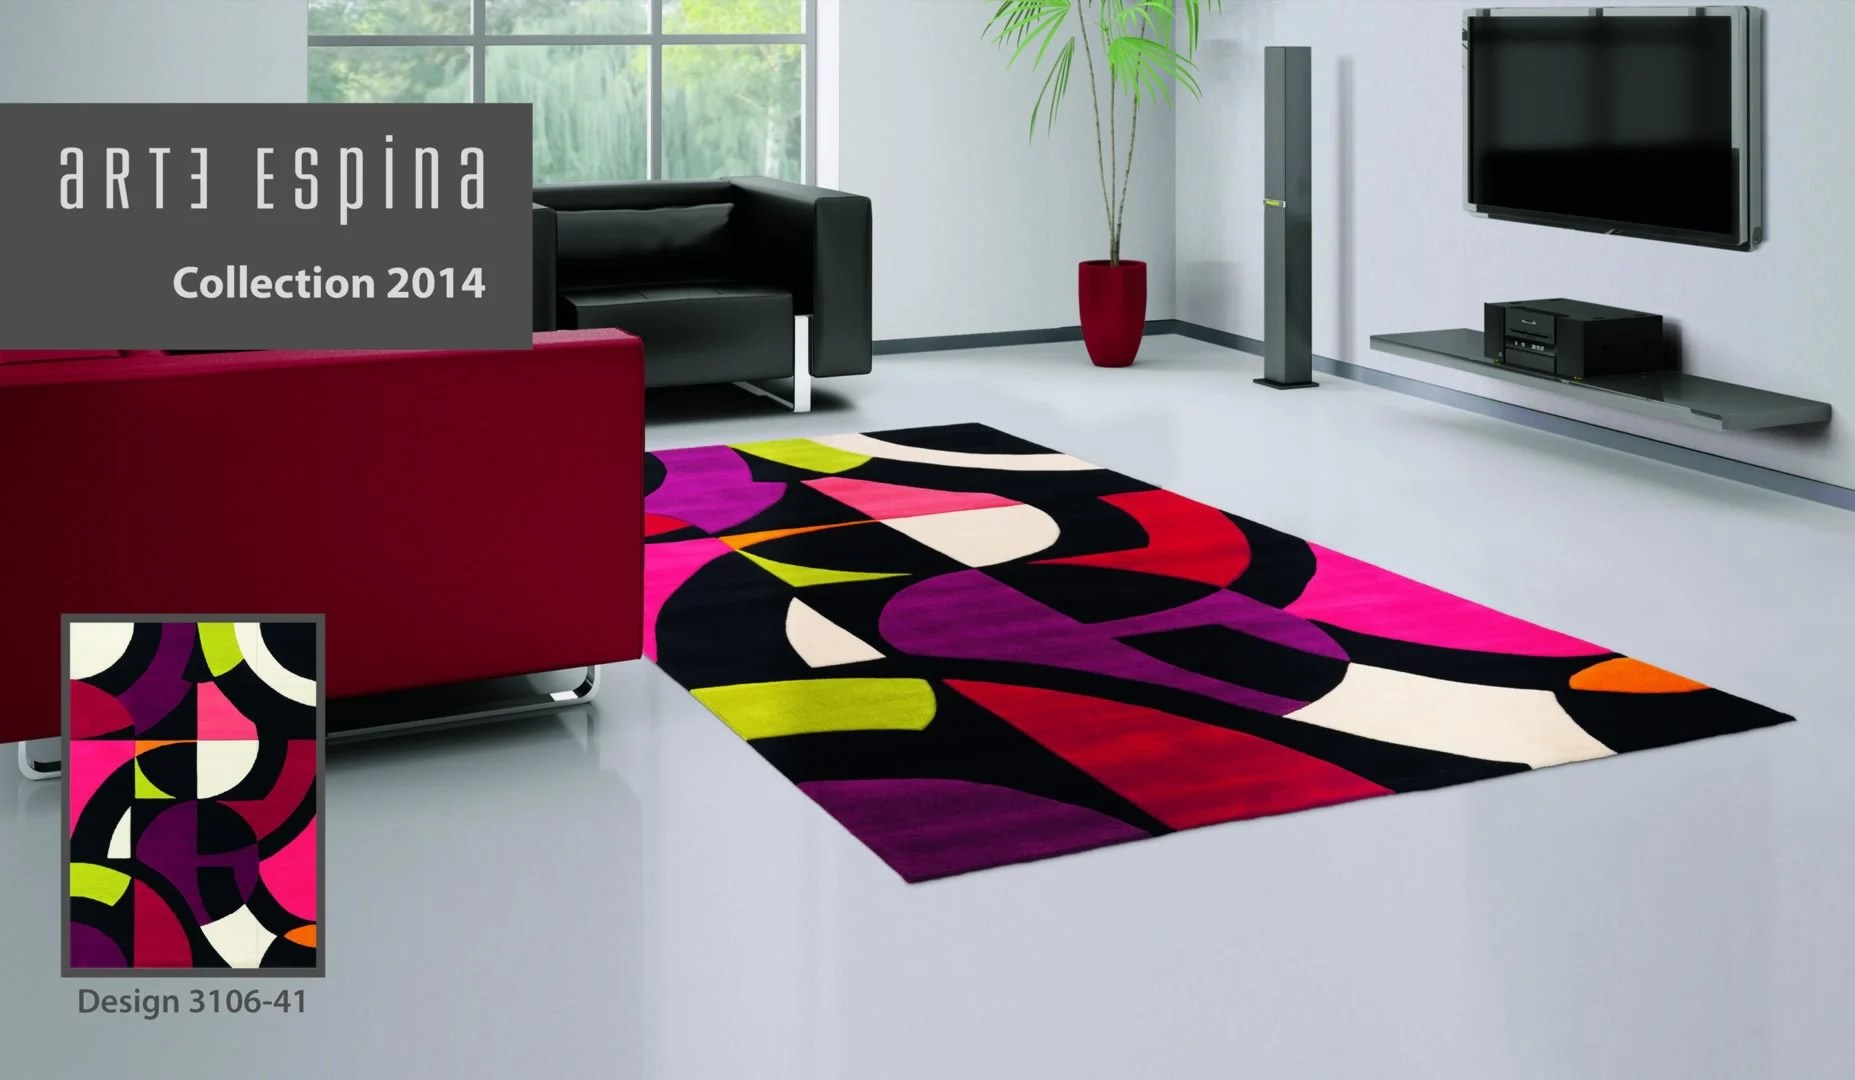 Tapis Arte Espina Boutique Paris Tapis Arte Espina Boutique Paris